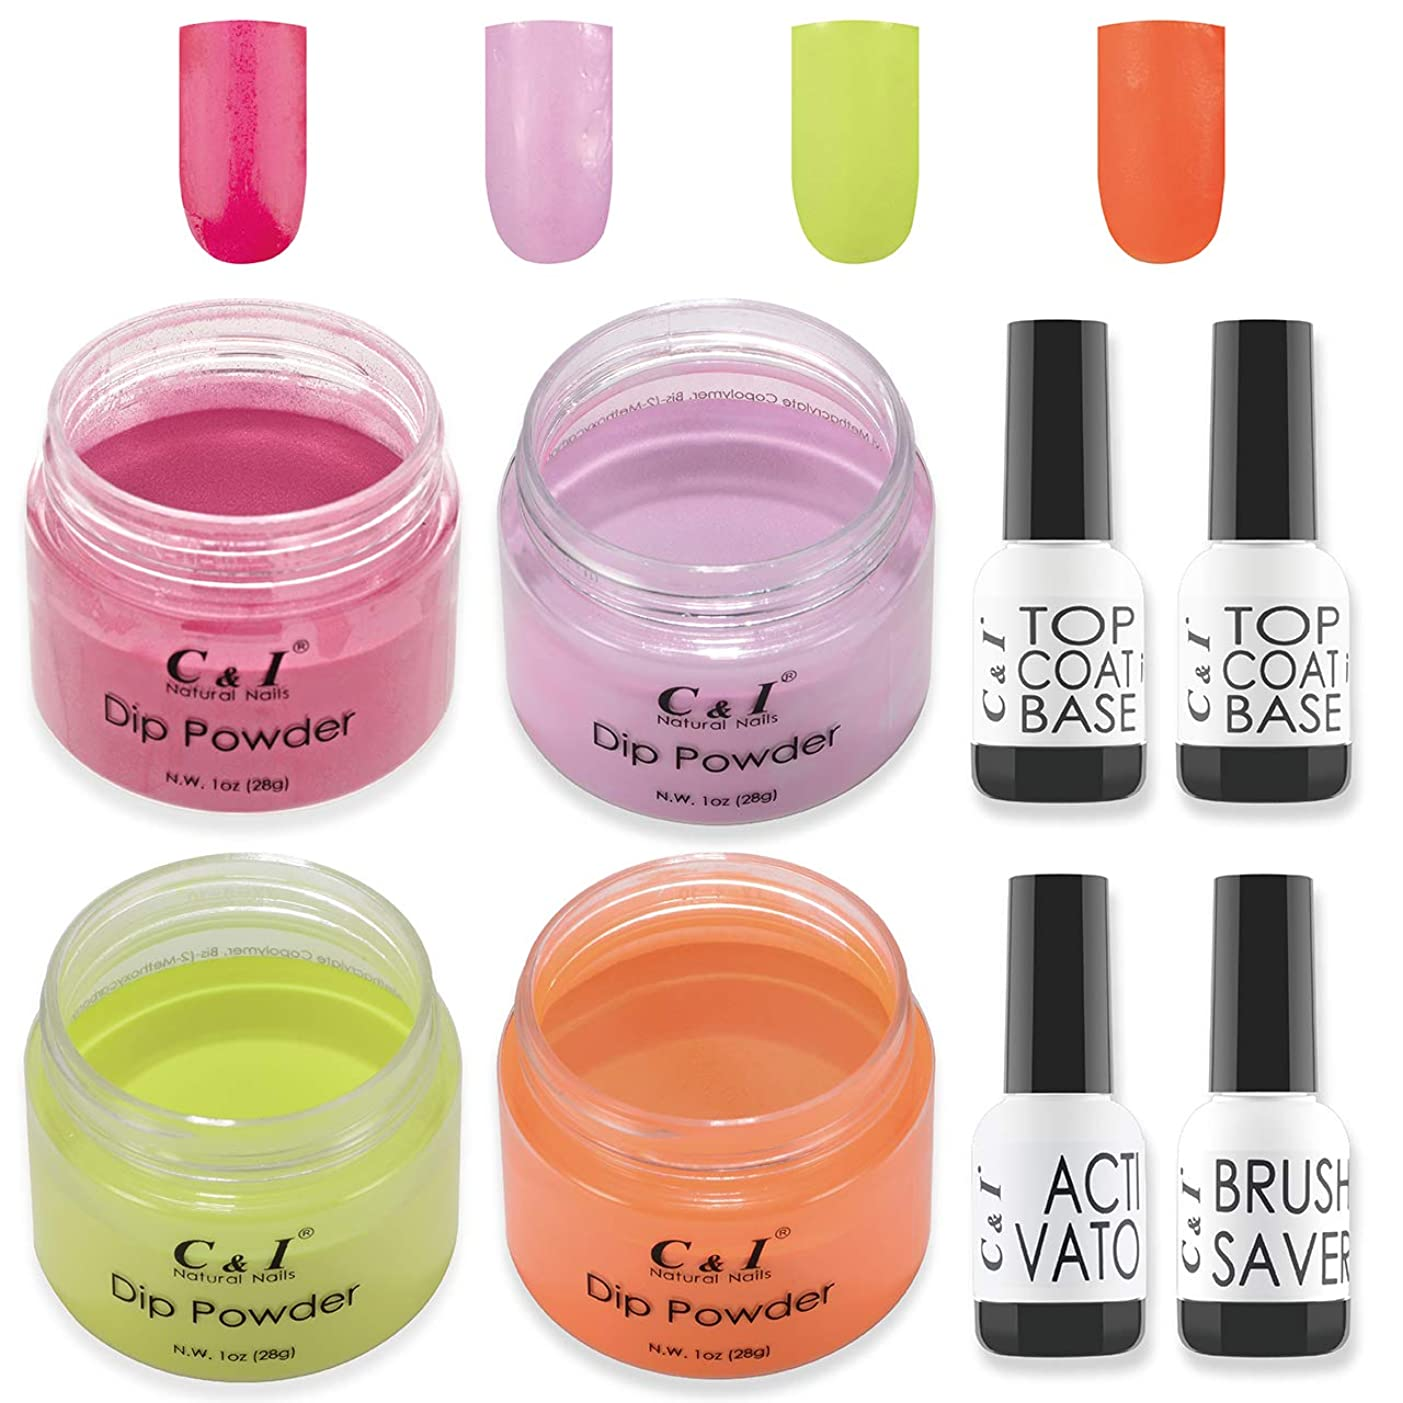 時計回りたっぷり祭りC & I Dip Powder Nail Colors & Liquids Set, 4 colors and 4 liquids, Gel Nail Effect Colors, N.W. 28 g * 4 pcs & 15 ml * 4 pcs